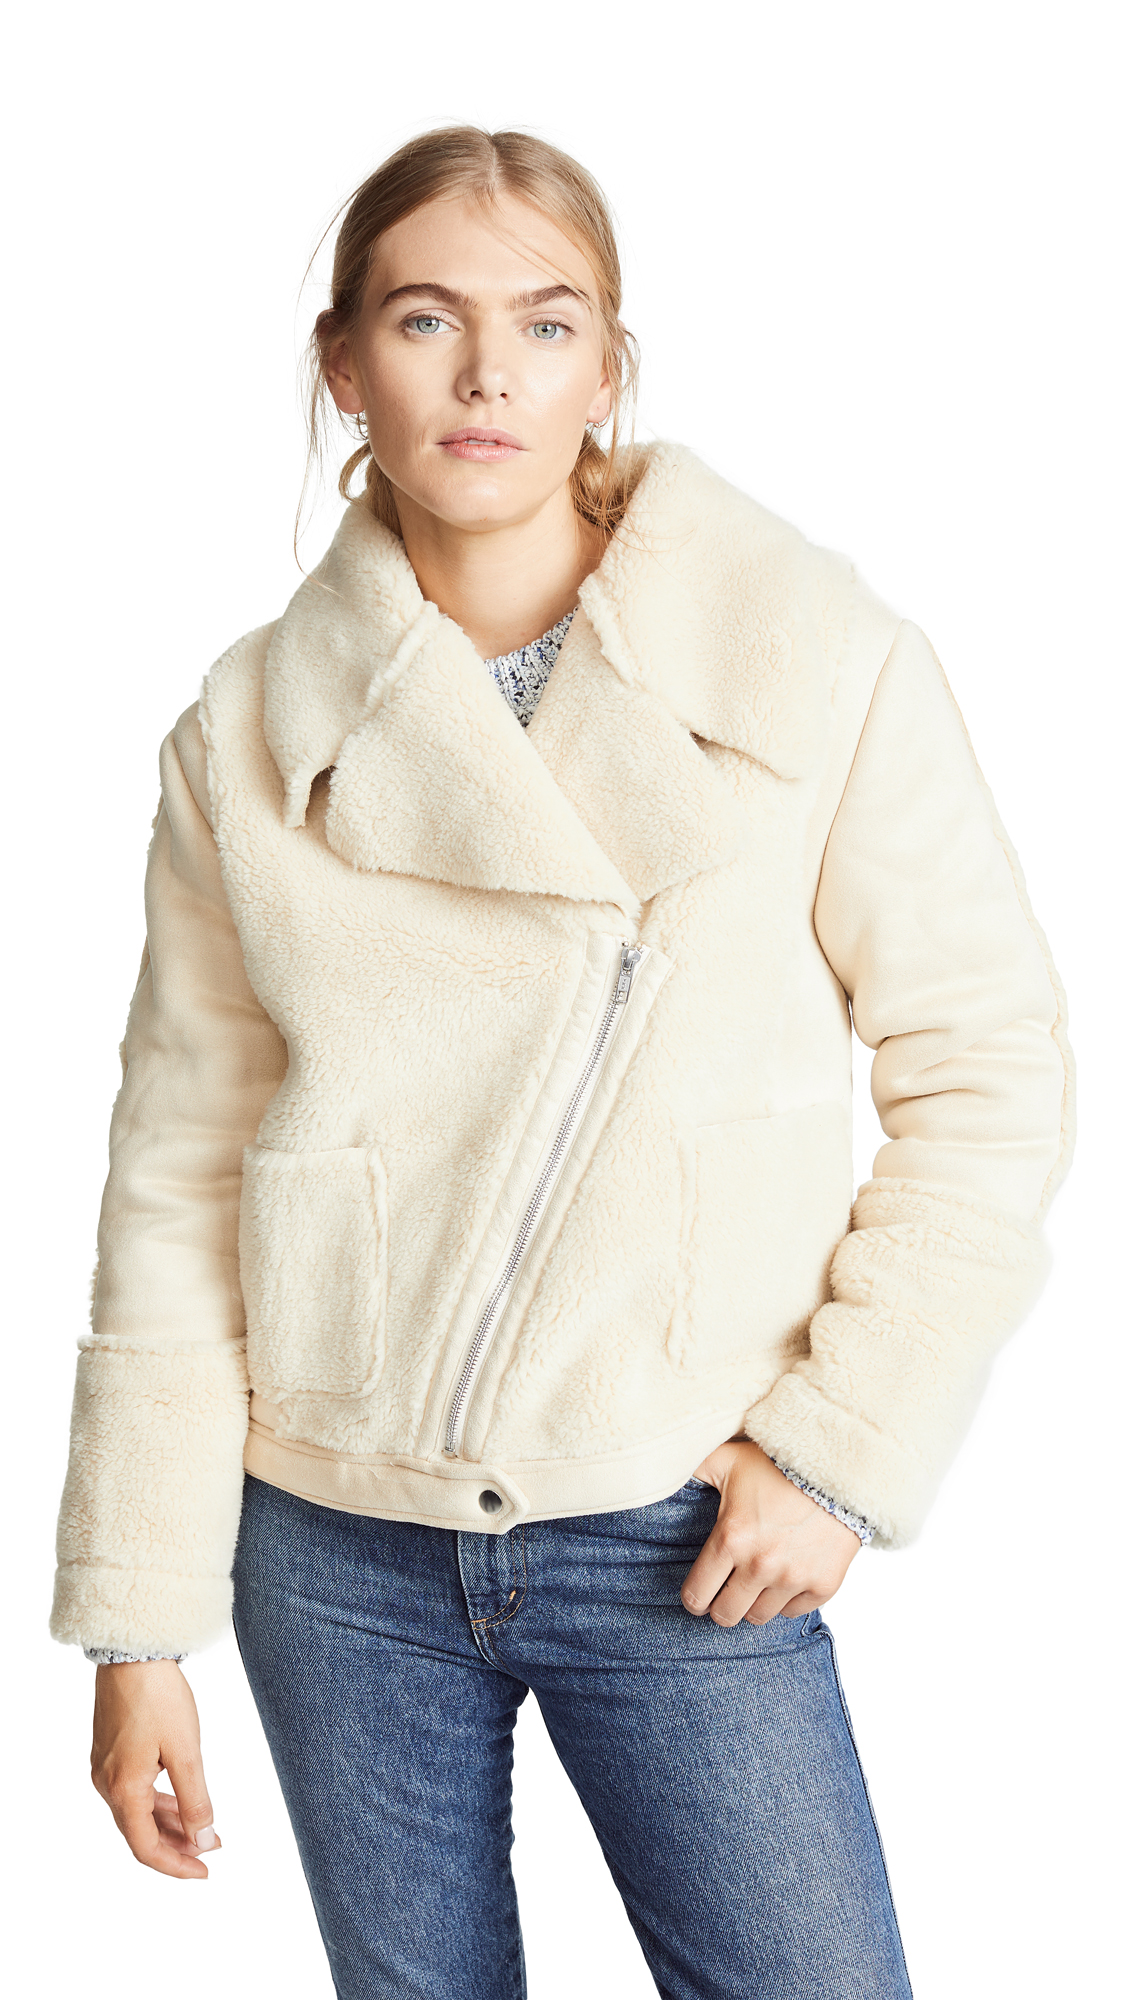 MINKPINK Let'S Go Sherpa Jacket in Cream